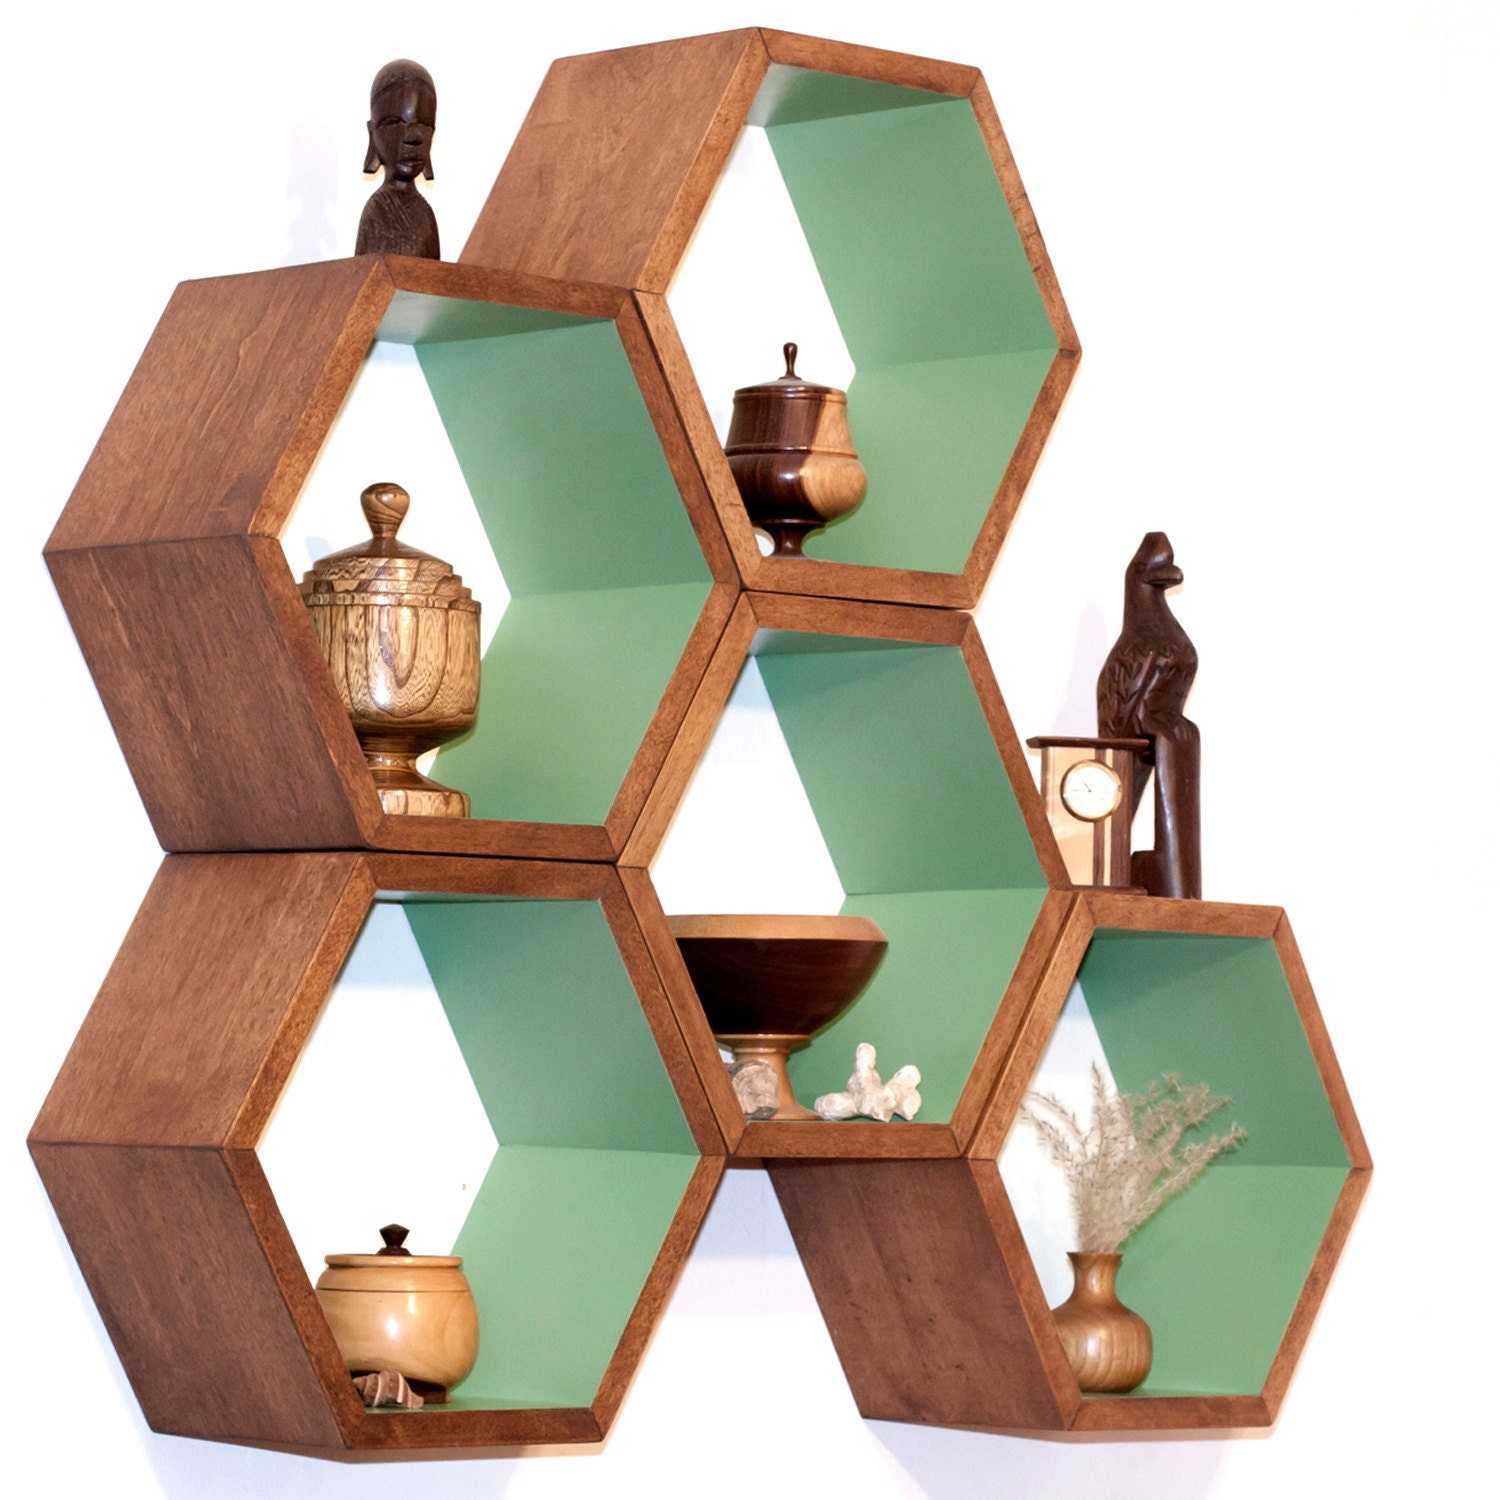 Hexagon Shelves, Toy Storage Shelving, Modular Bookcase, Honeycomb Shelf, Kid's Furniture, Eco-Friendly Book Shelves, Modern Shelve, 5 Large